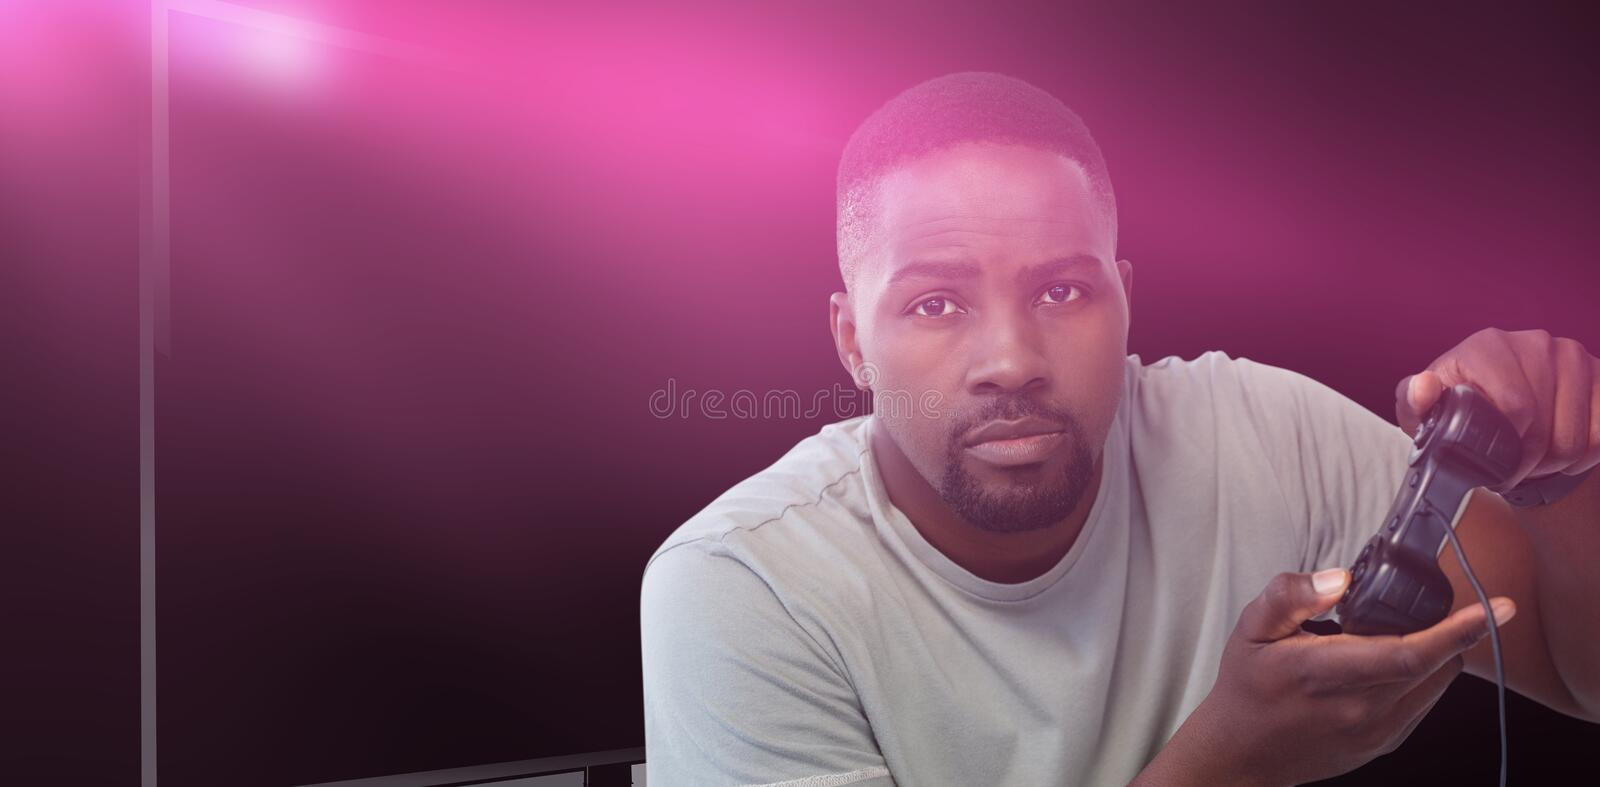 Composite image of man playing video game against white background royalty free stock photo